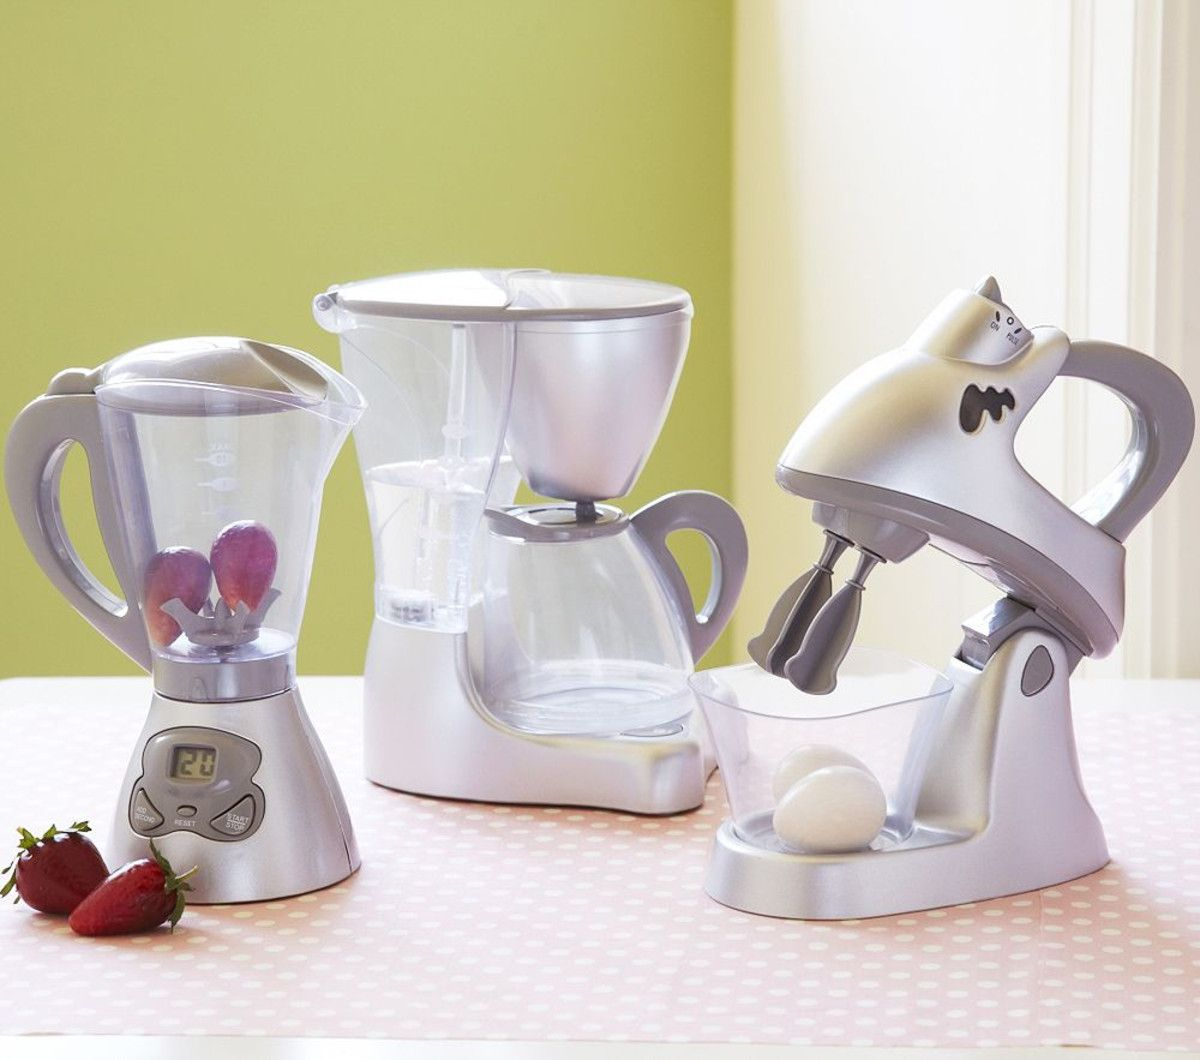 Toy blender and mixer for Aiden\'s Kitchen Appliances | Baking ...